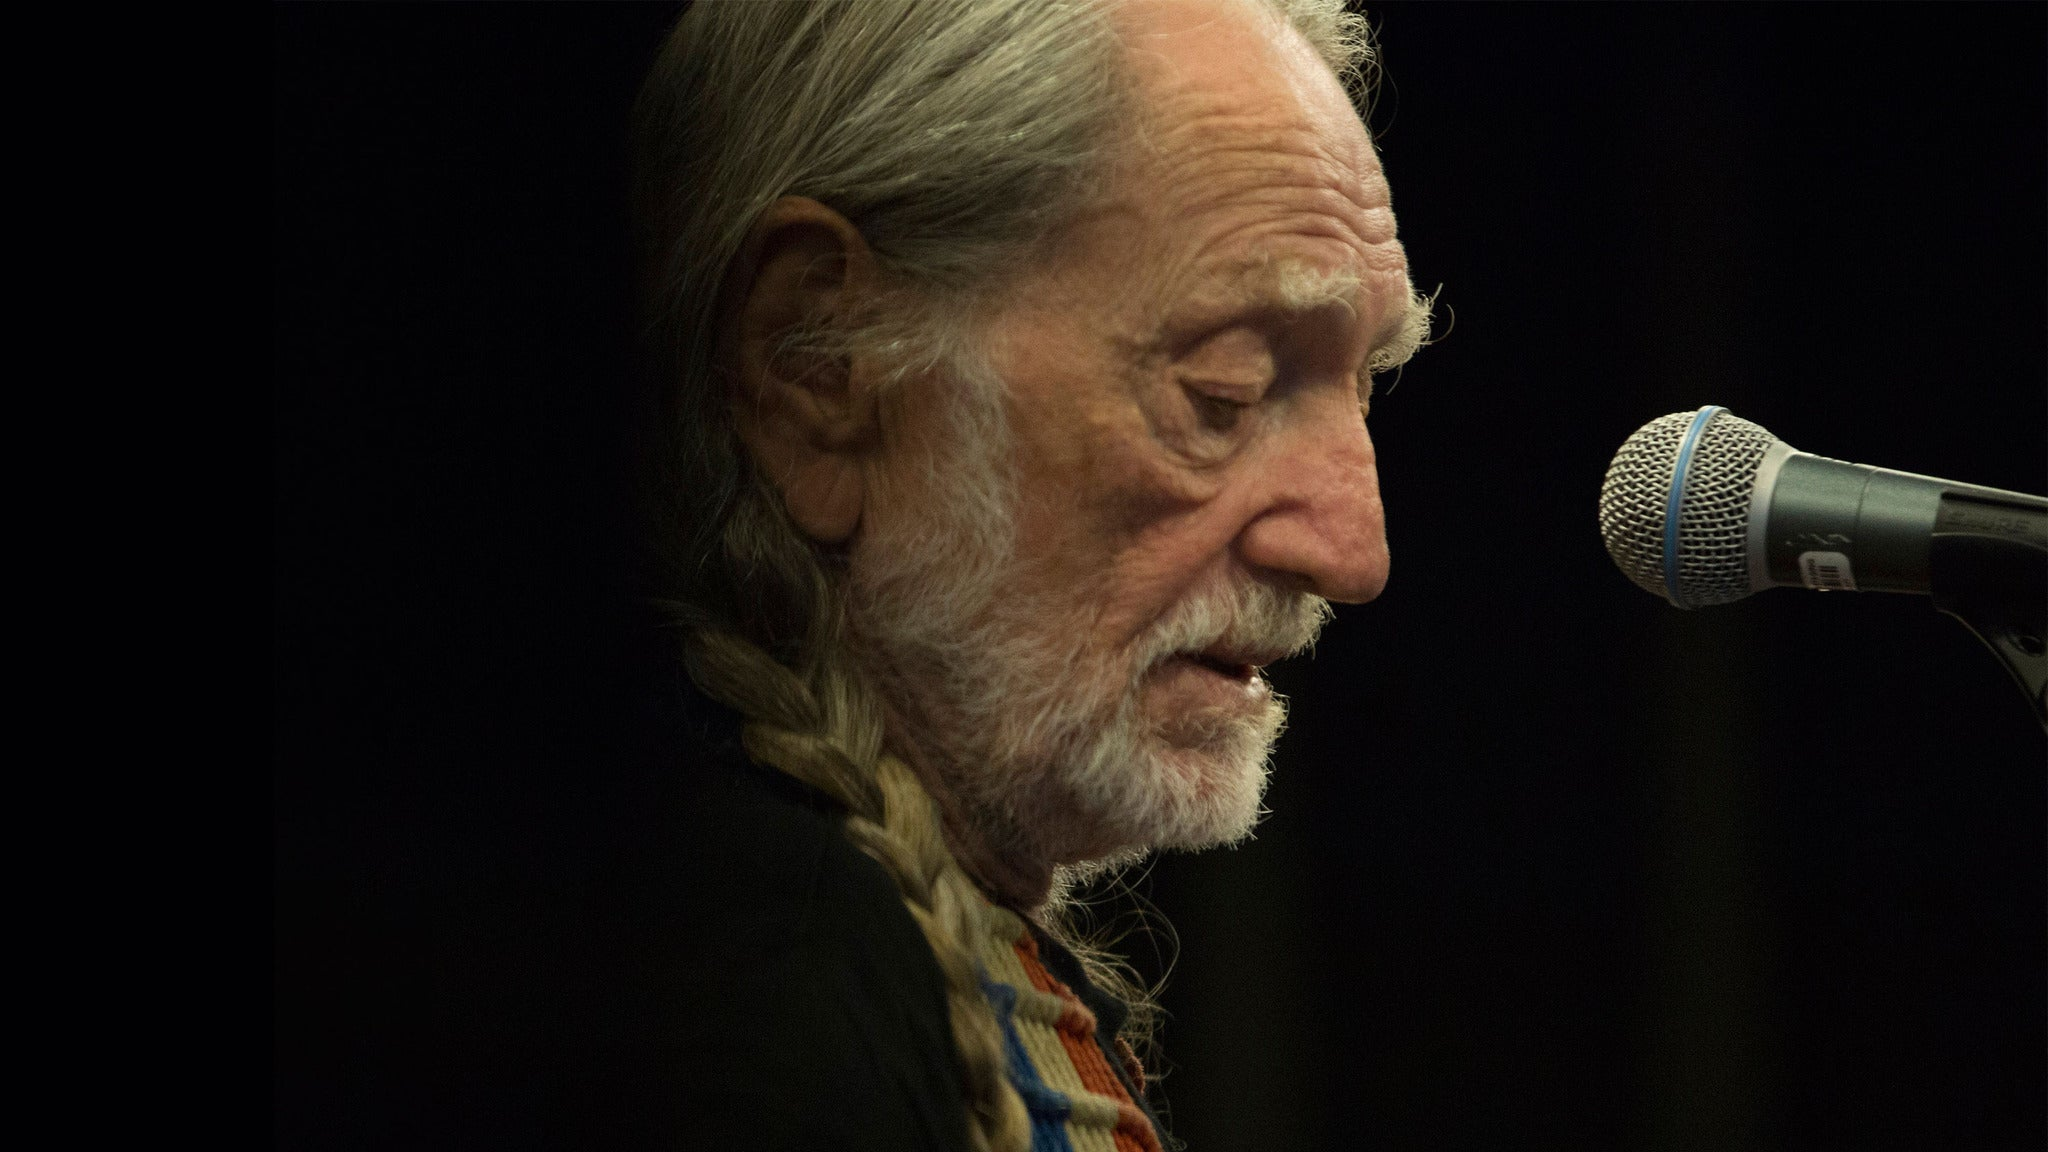 Willie Nelson & Family - Sugar Land, TX 77479